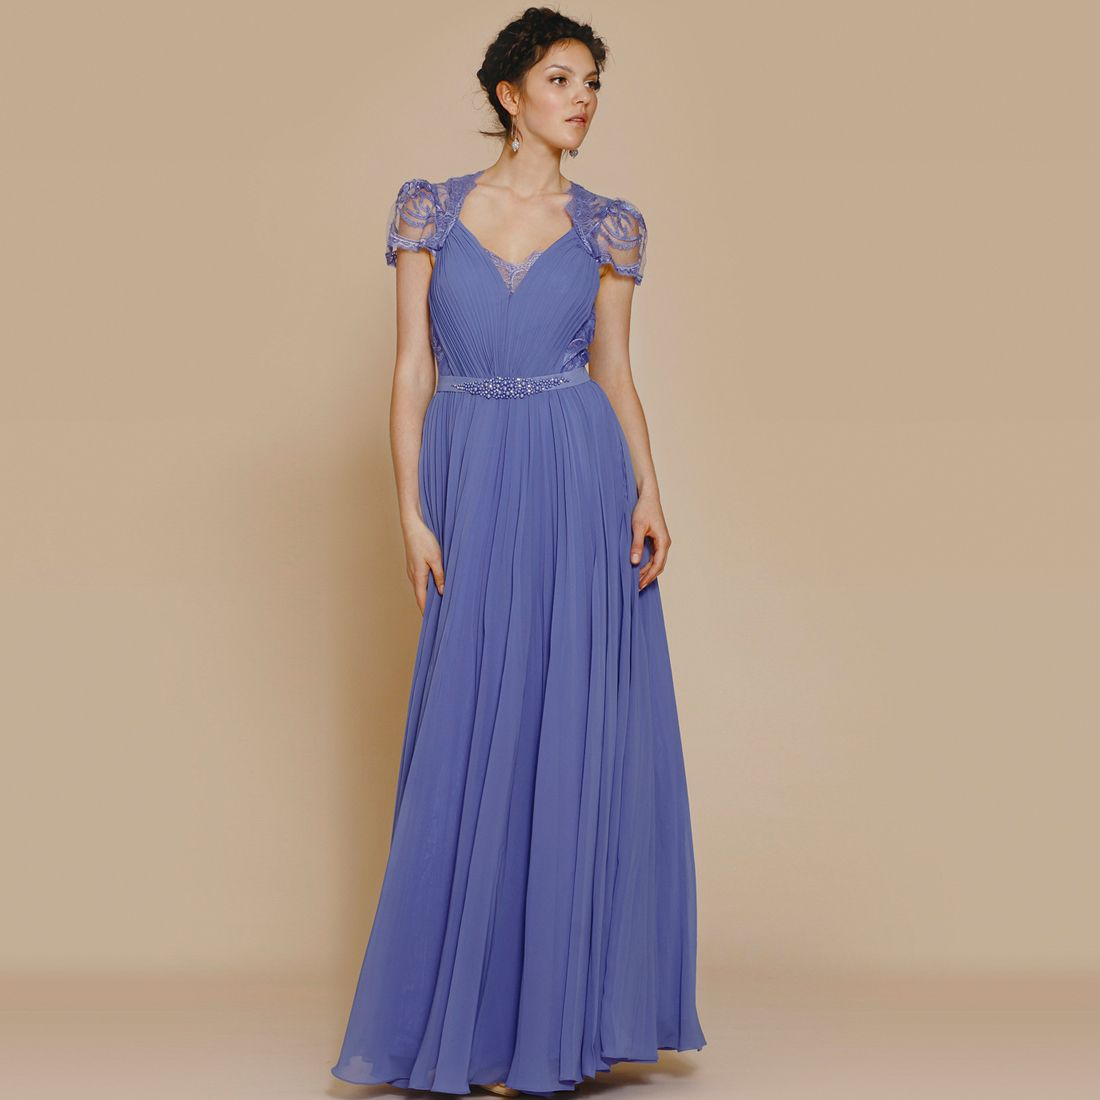 Fashionably Yours - Tania Cap Sleeve Maxi Dress In Blue Violet ...